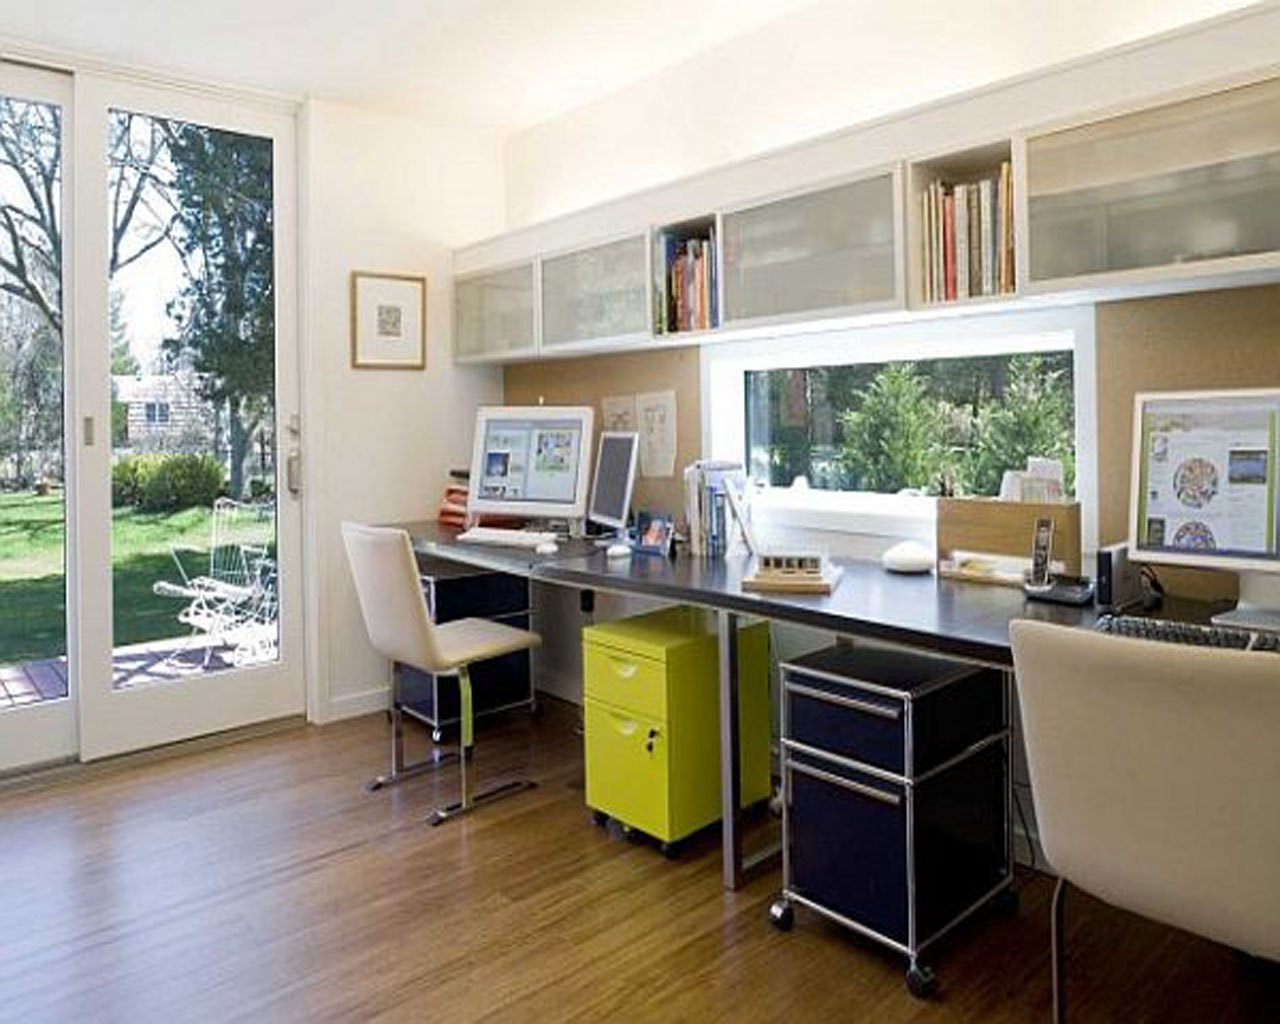 Home office design ideas on a budget dream house experience for Home office idea